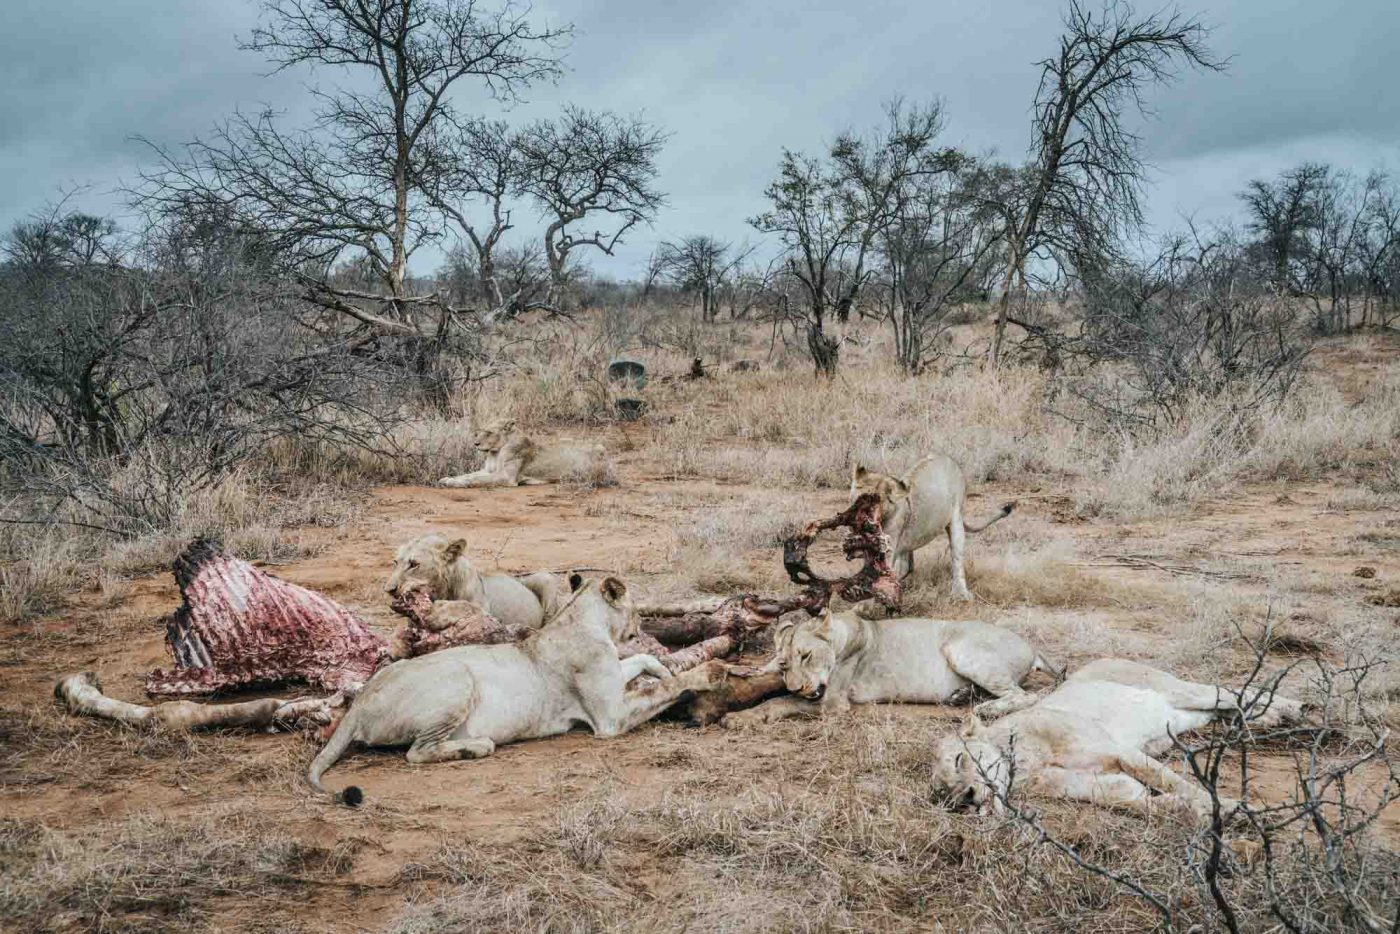 A pride of lions and their kill in Timbavati Nature Reserve